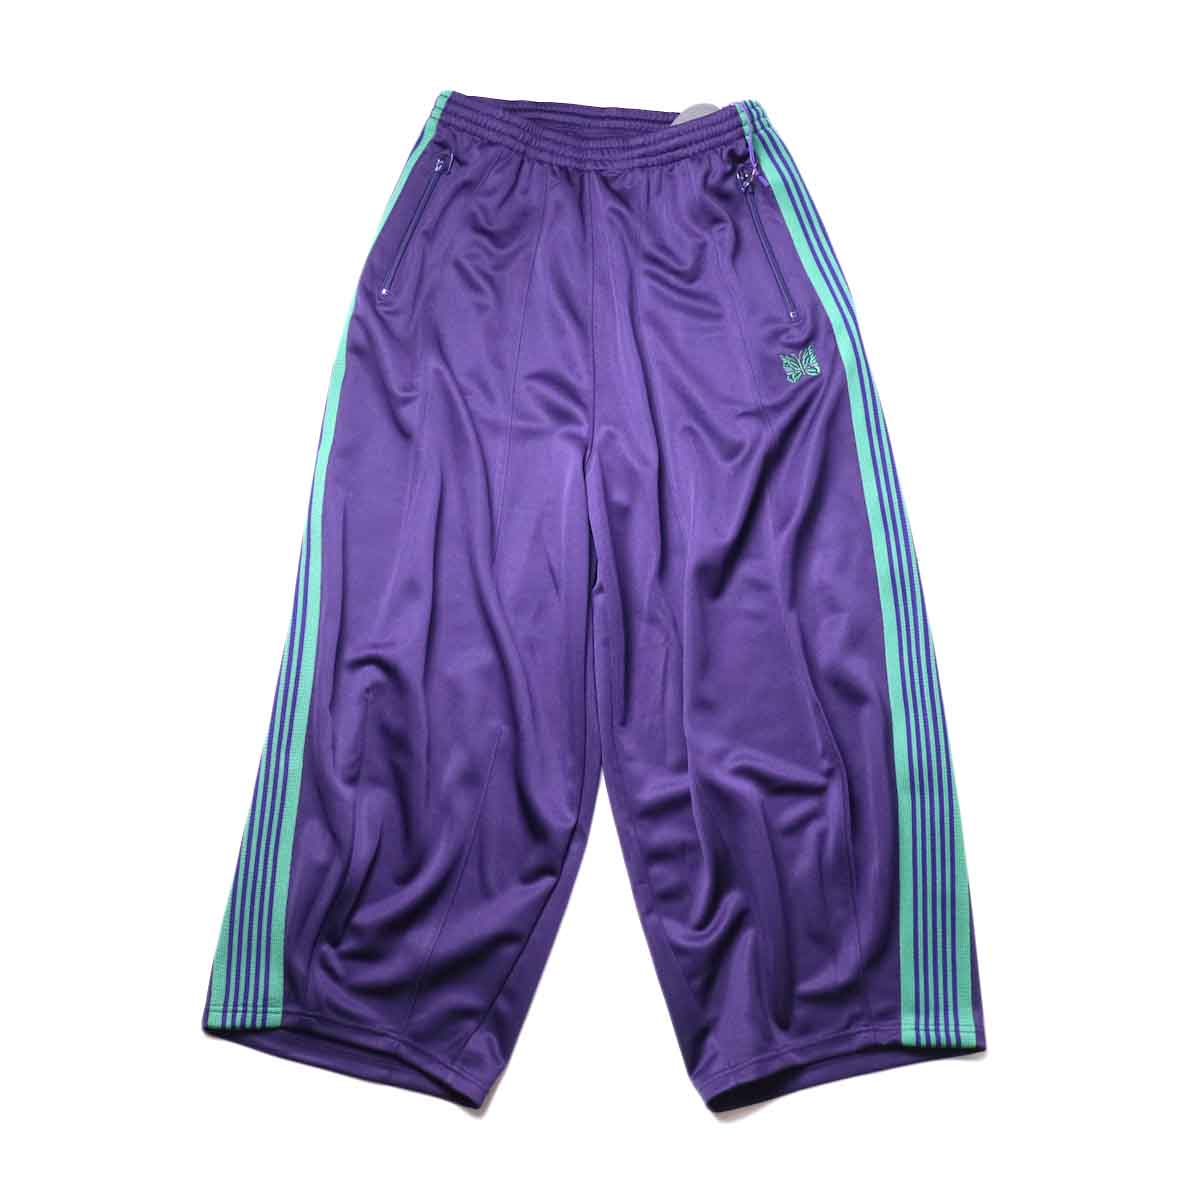 Needles / H.D. TRACK PANT - POLY SMOOTH (Eggplant)正面